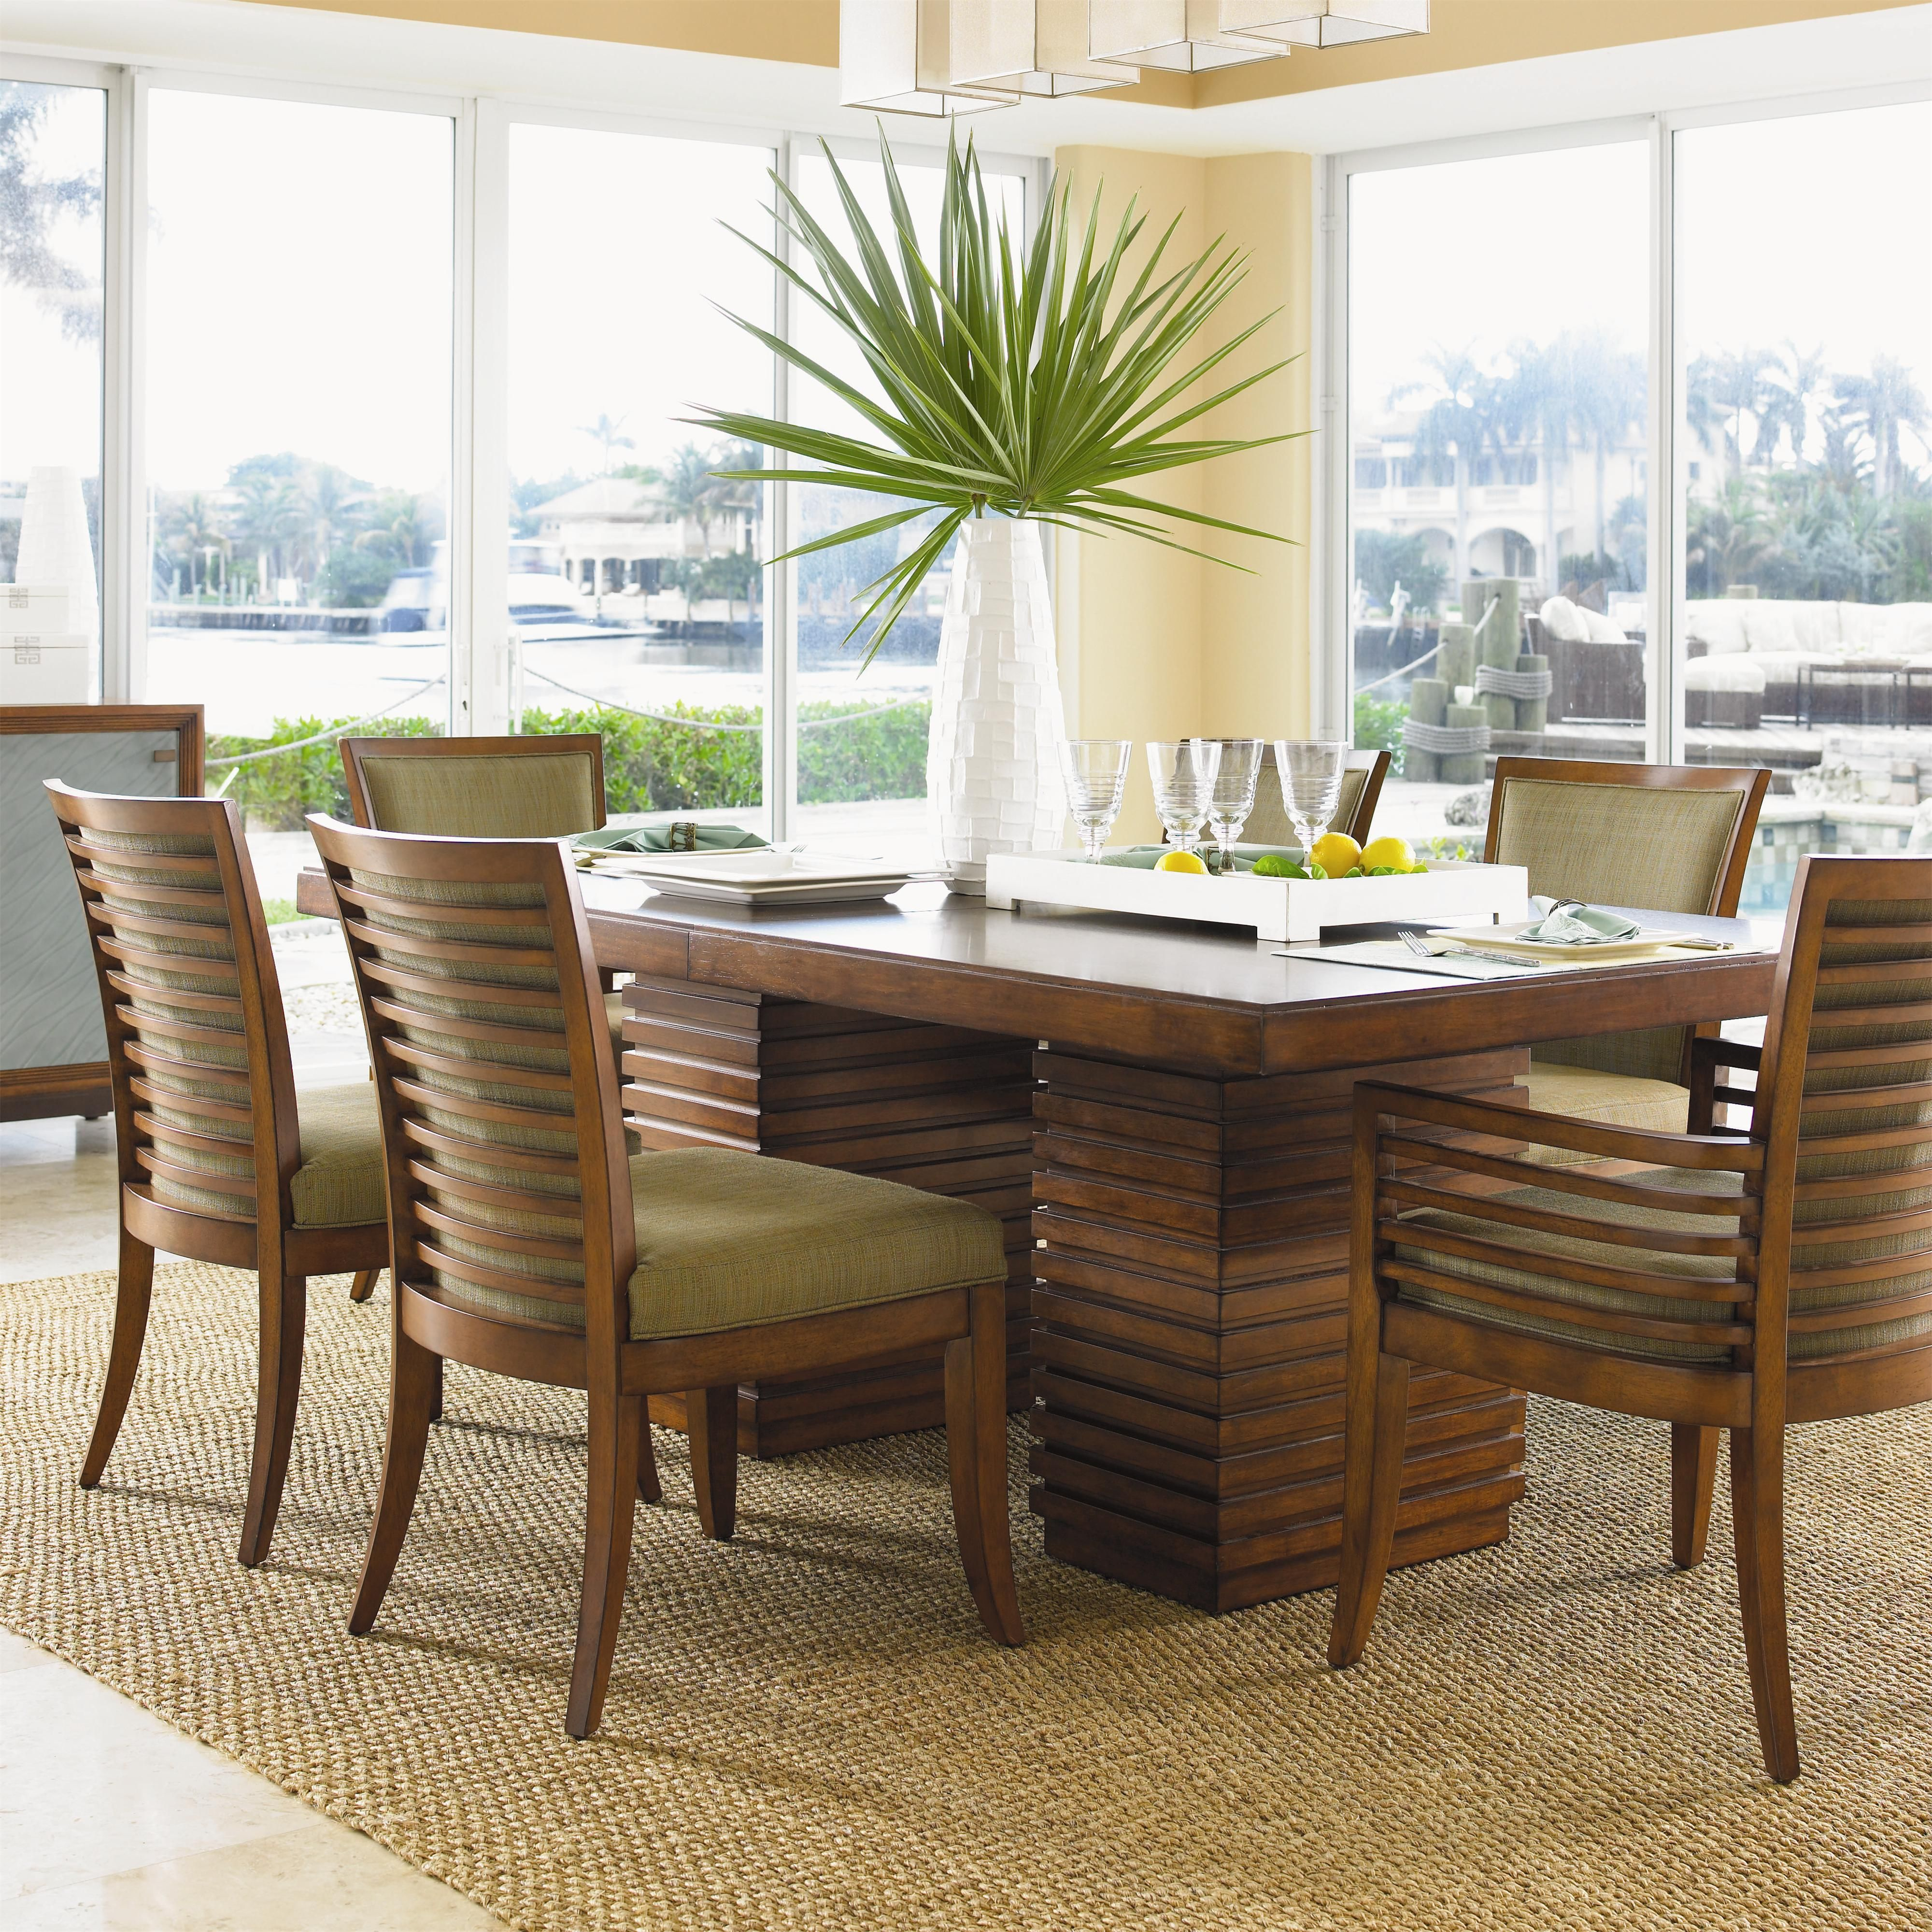 Ocean Club 7 Piece Table  My Future Home  Pinterest  Ocean Club Pleasing Tropical Dining Room Chairs Decorating Design